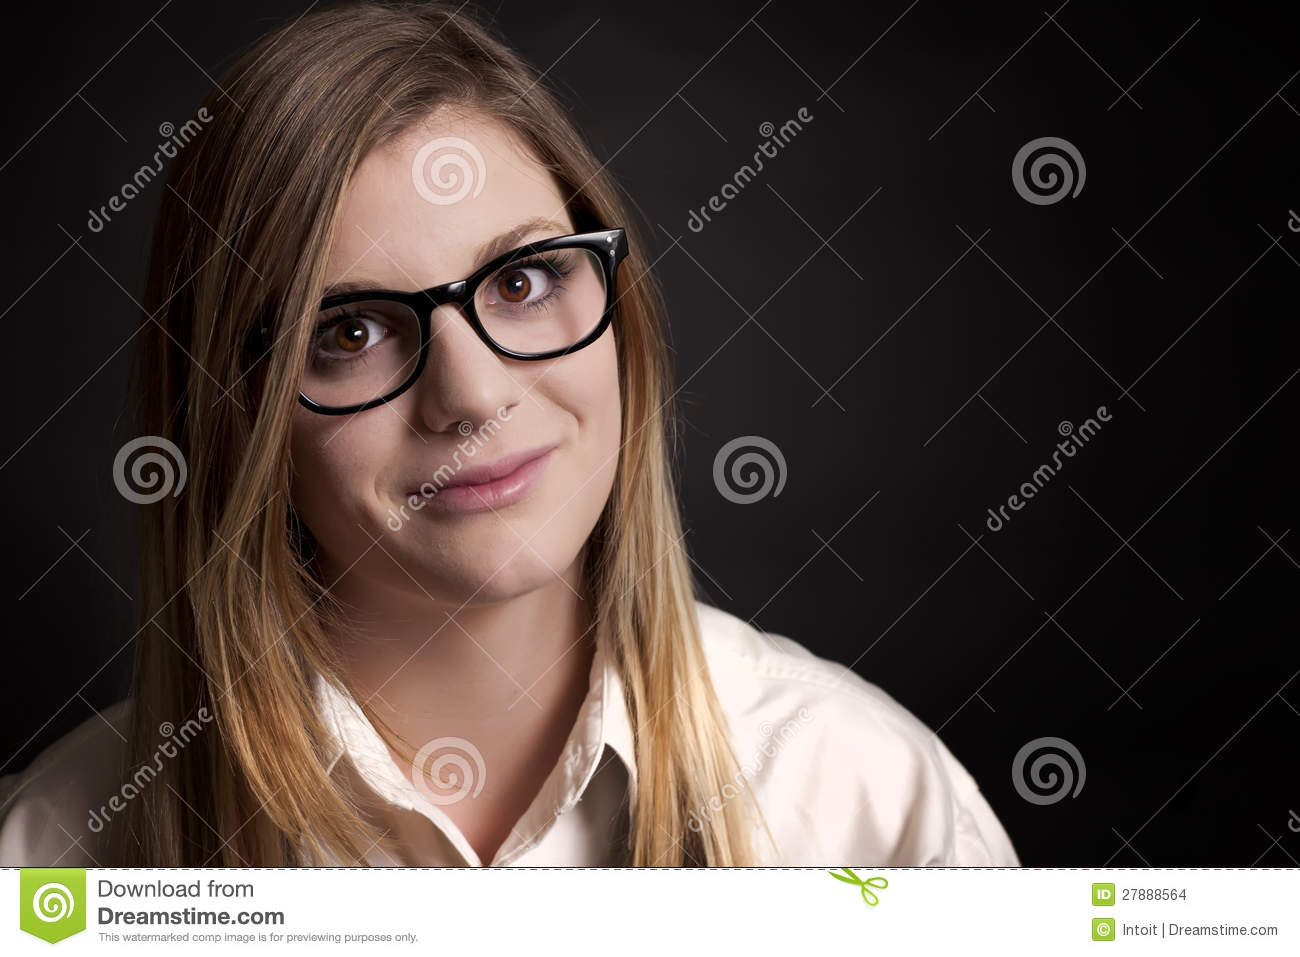 Naked pictures of black girl with glasses-9596